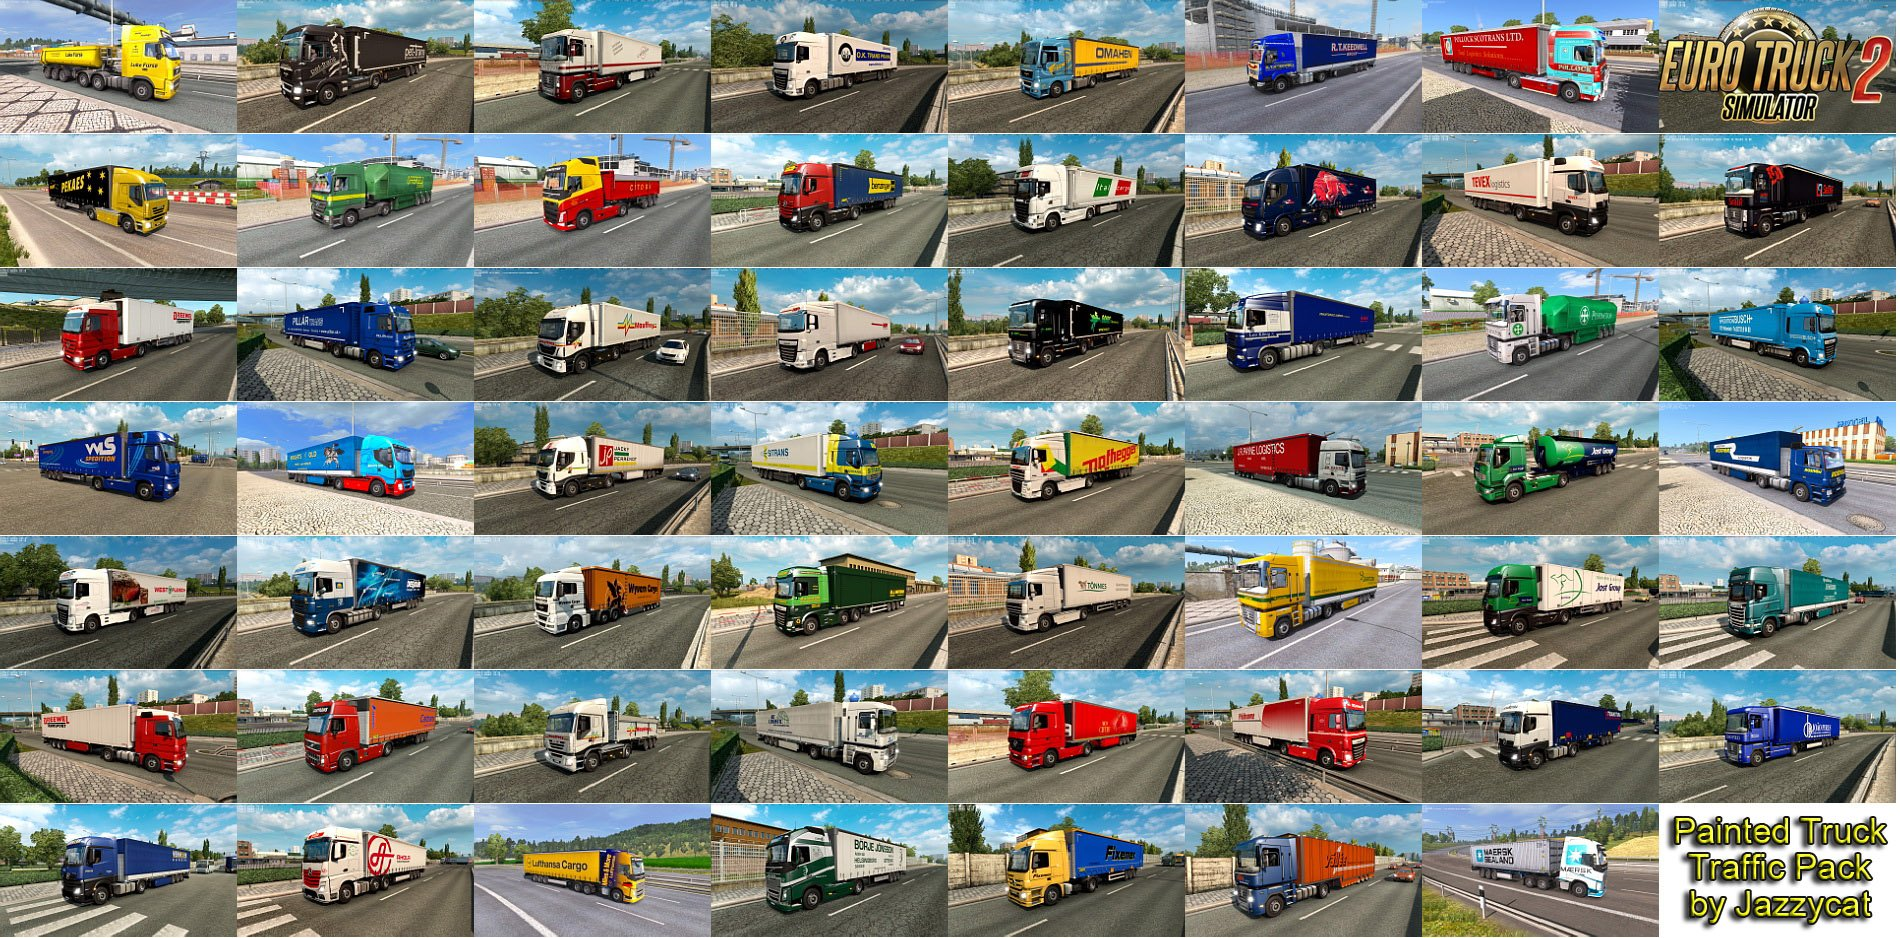 Painted Truck Traffic Pack v4.8 by Jazzycat